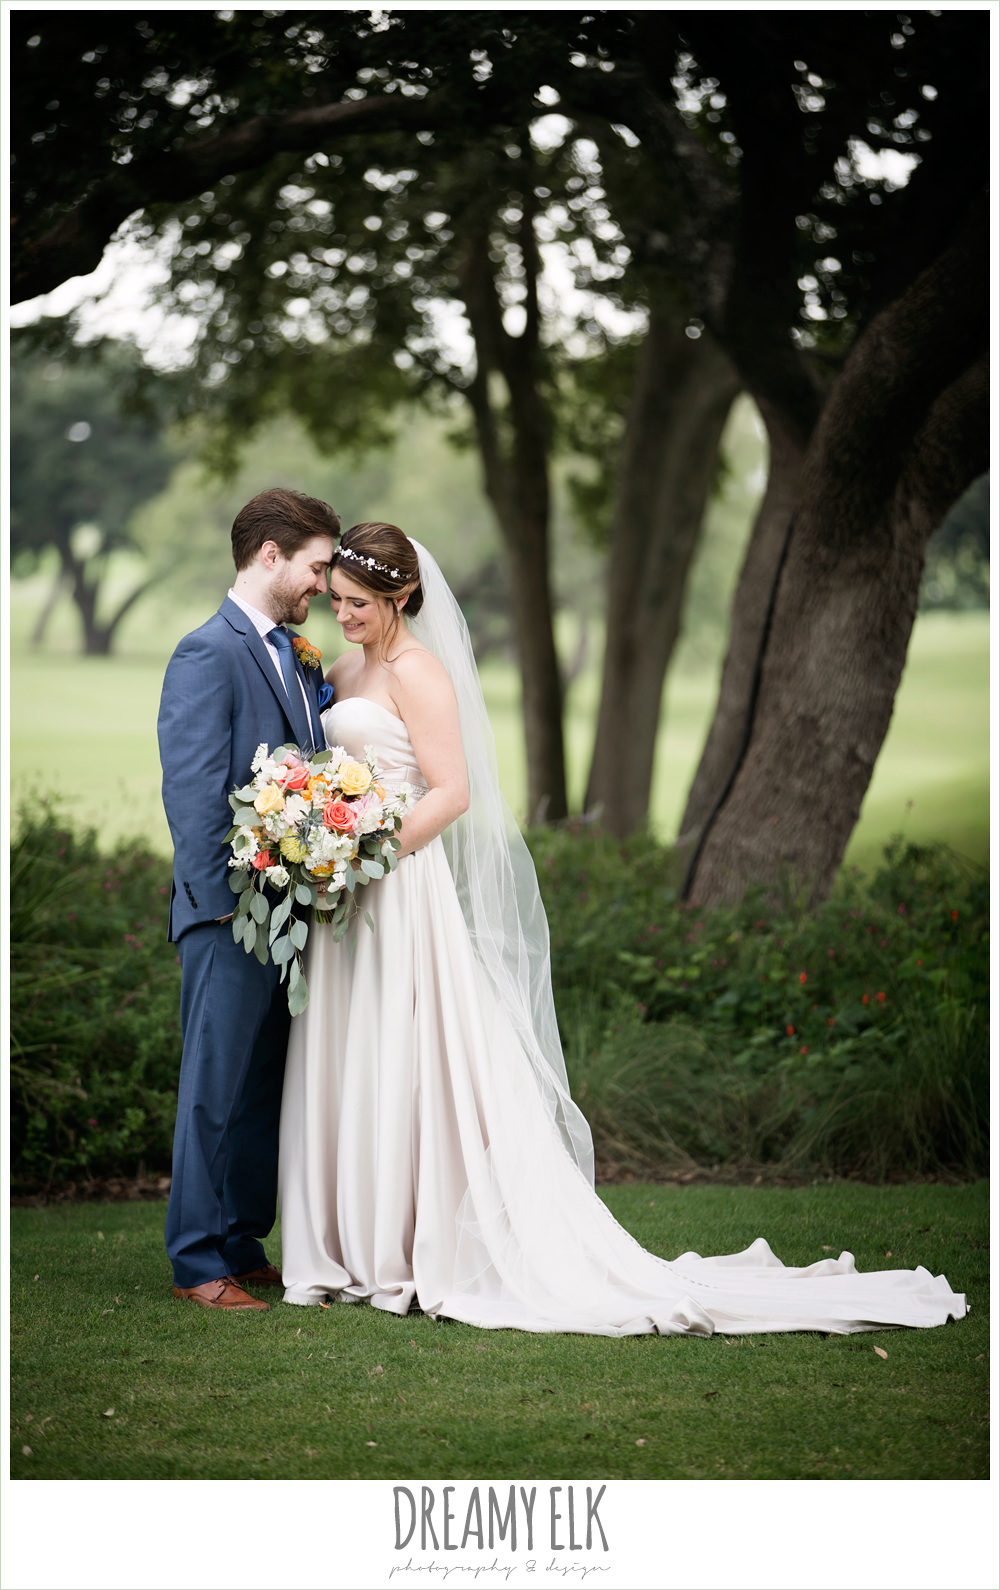 bride and groom portraits, groom in men's wearhouse navy suit pink shirt and navy tie, sweetheart strapless justin alexander wedding dress in sand color, colorful outdoor sunday morning brunch wedding, hyatt hill country club, san antonio wedding photo {dreamy elk photography and design}